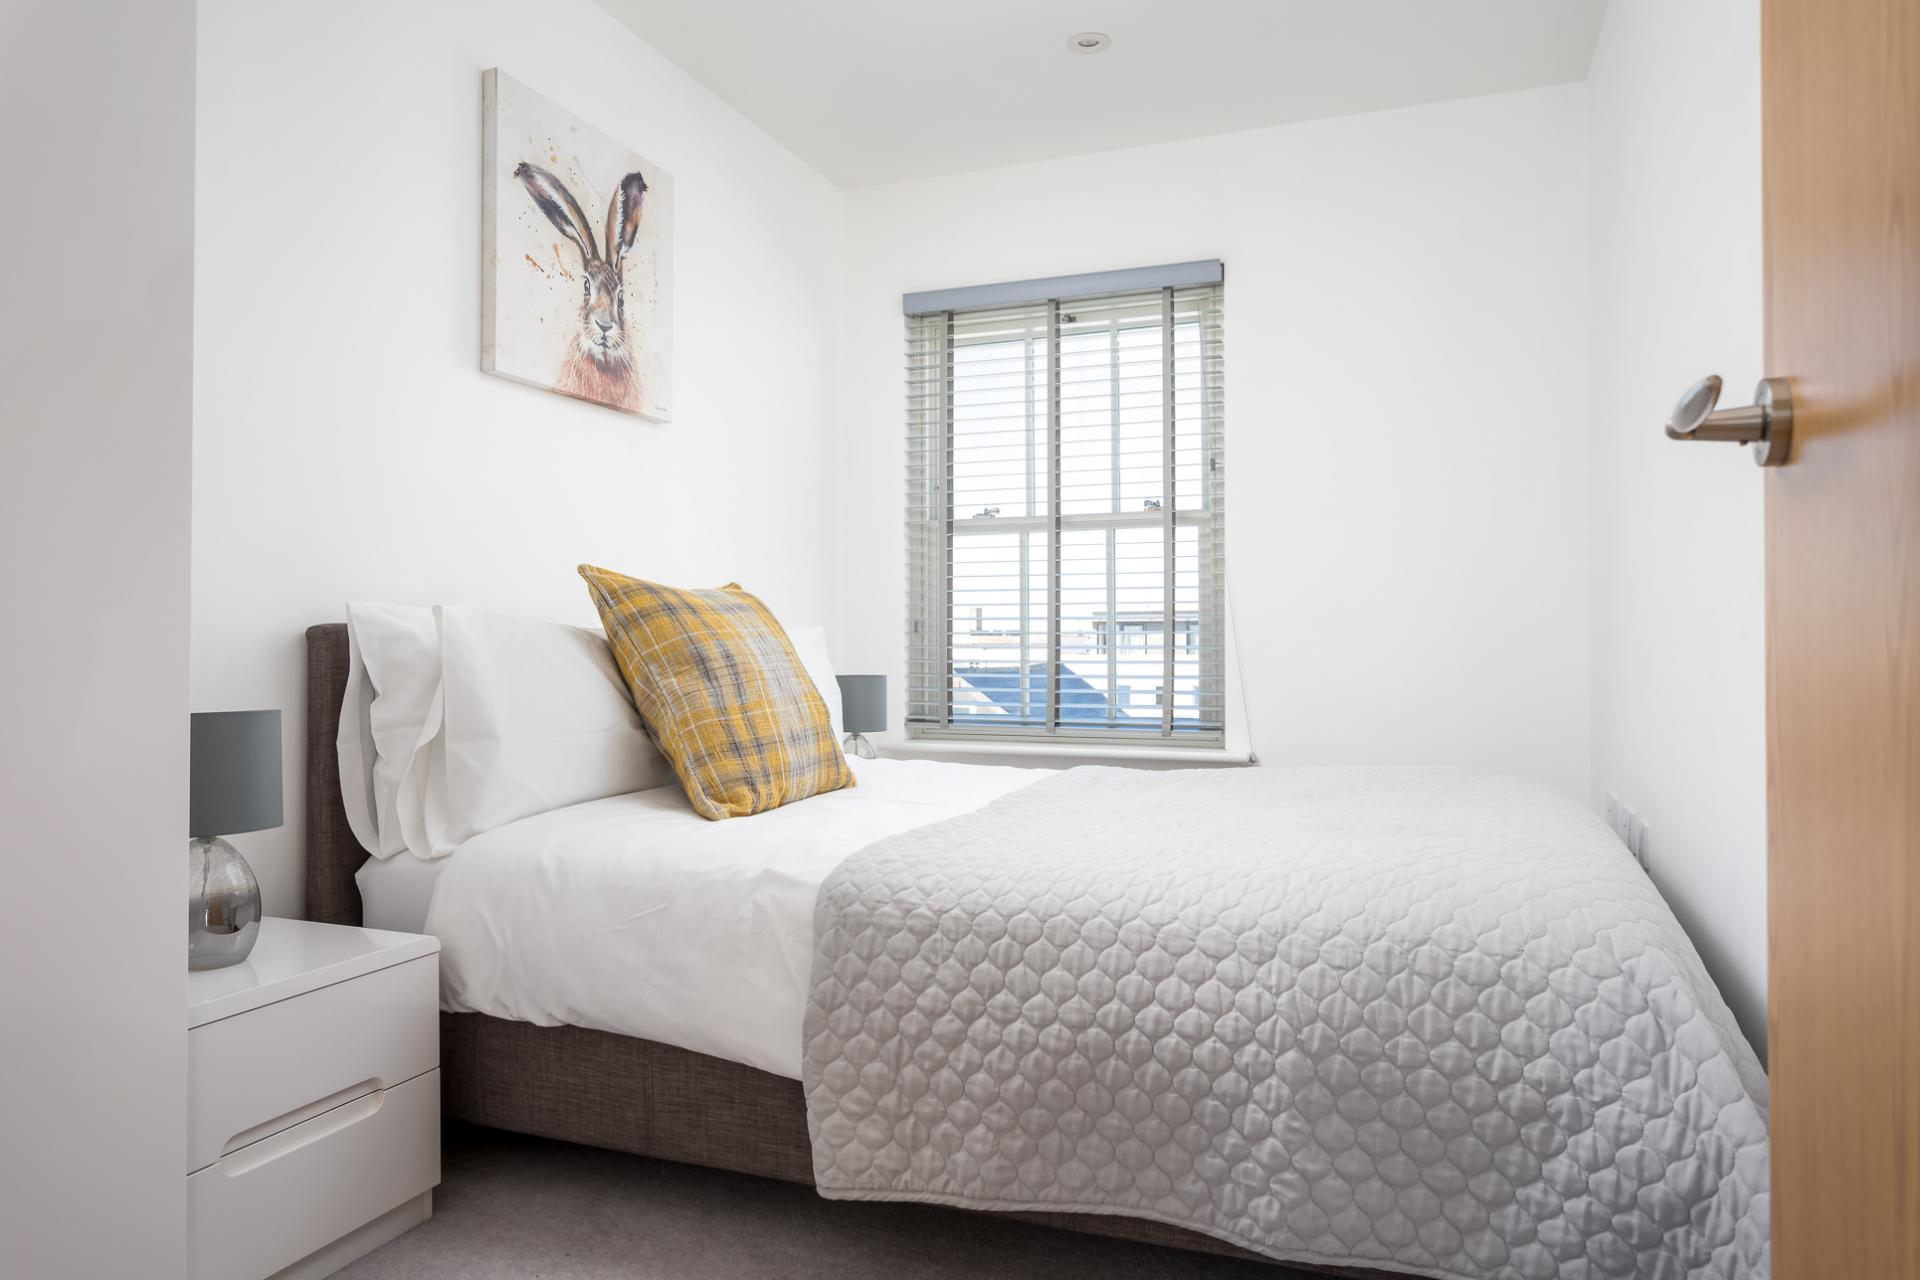 Bed at Prince Regent Mews Apartment - Citybase Apartments